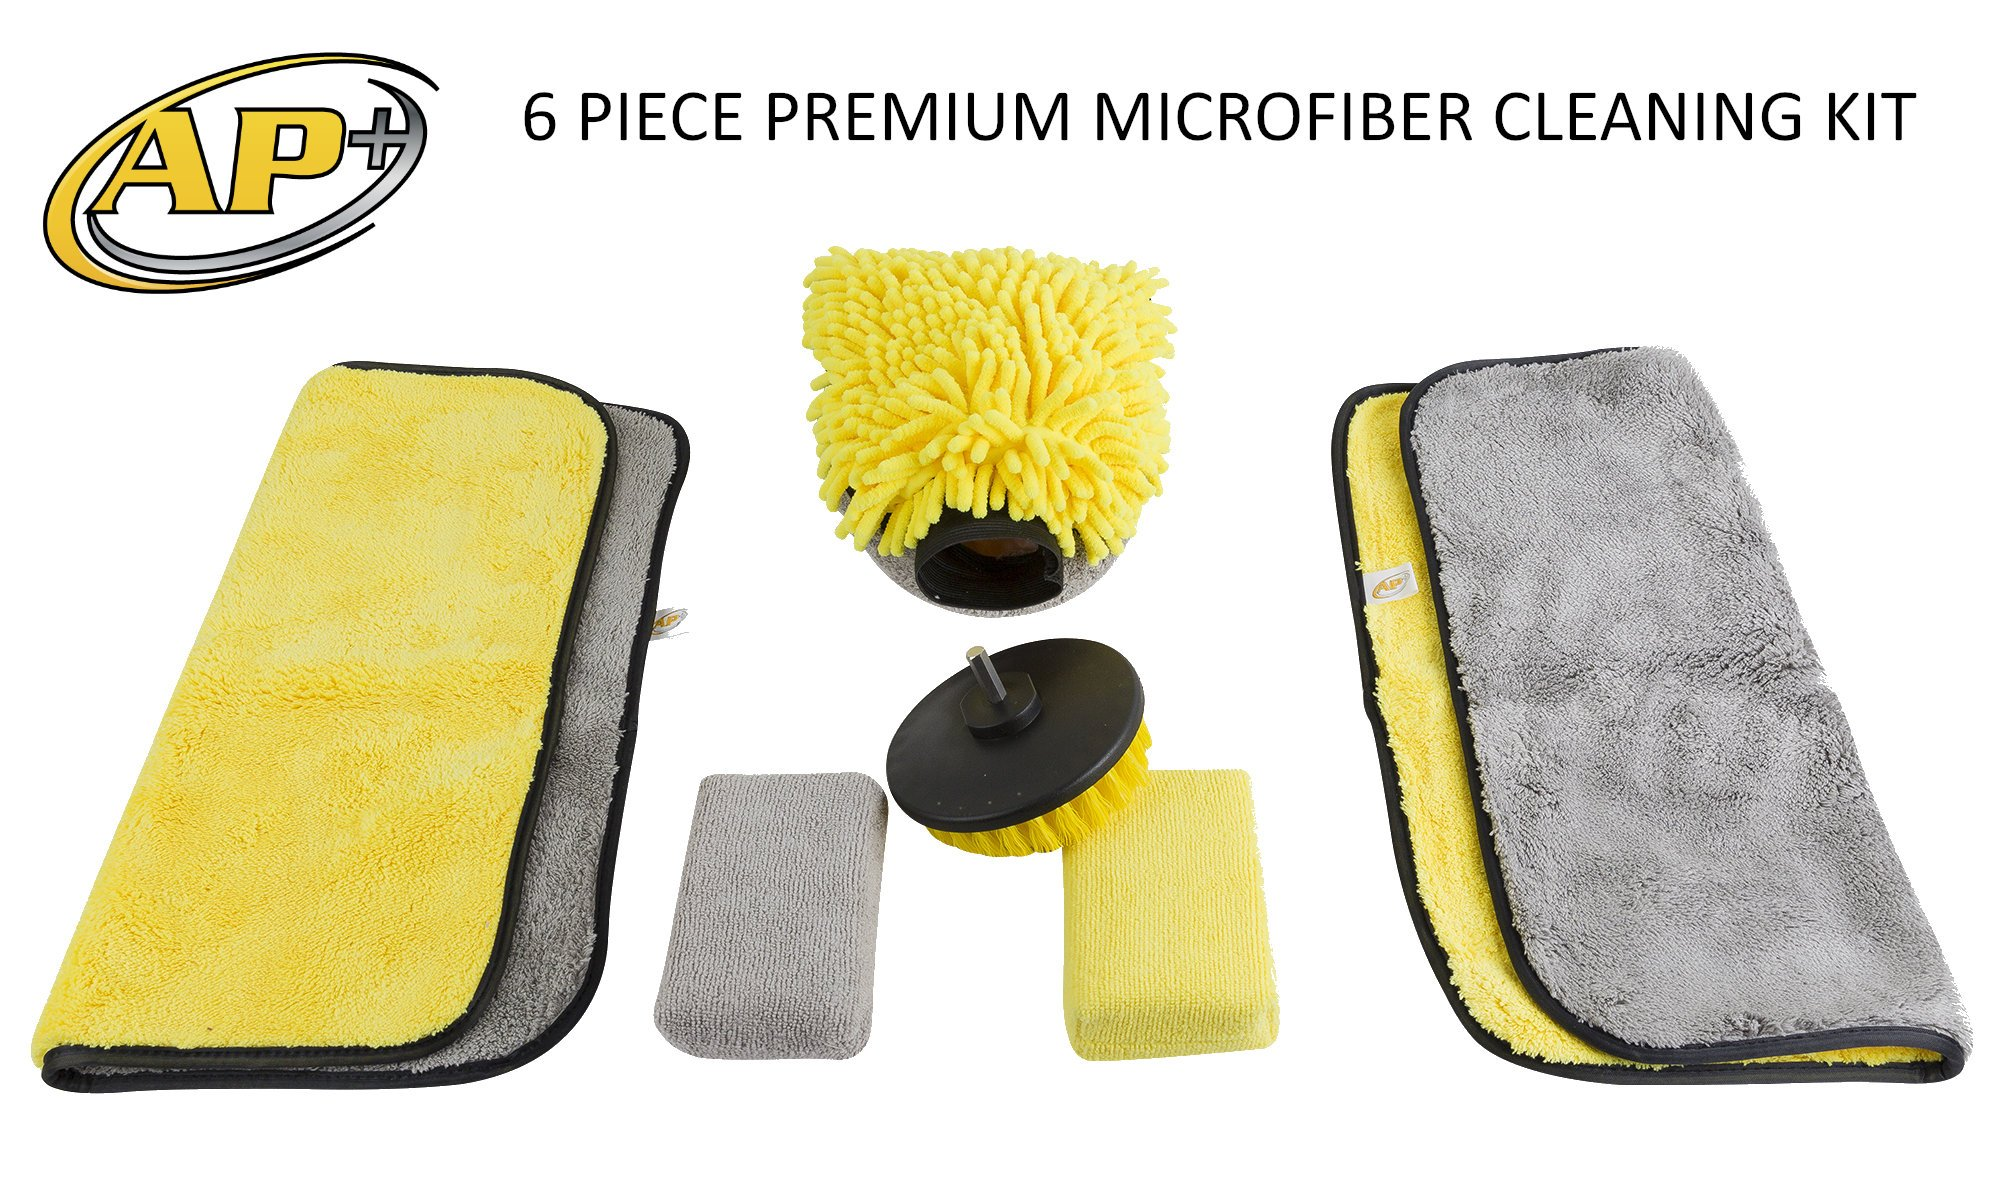 Microfiber Cleaning Kit Cloths Towels Rags Sponges Wash Mitt & Carpet Brush 6-Piece Kit for Cars, Homes, Kitchens, Furniture, Floors, Trucks, Motorcycles, Dusting, Boats, Garages, Rugs, Upholstery